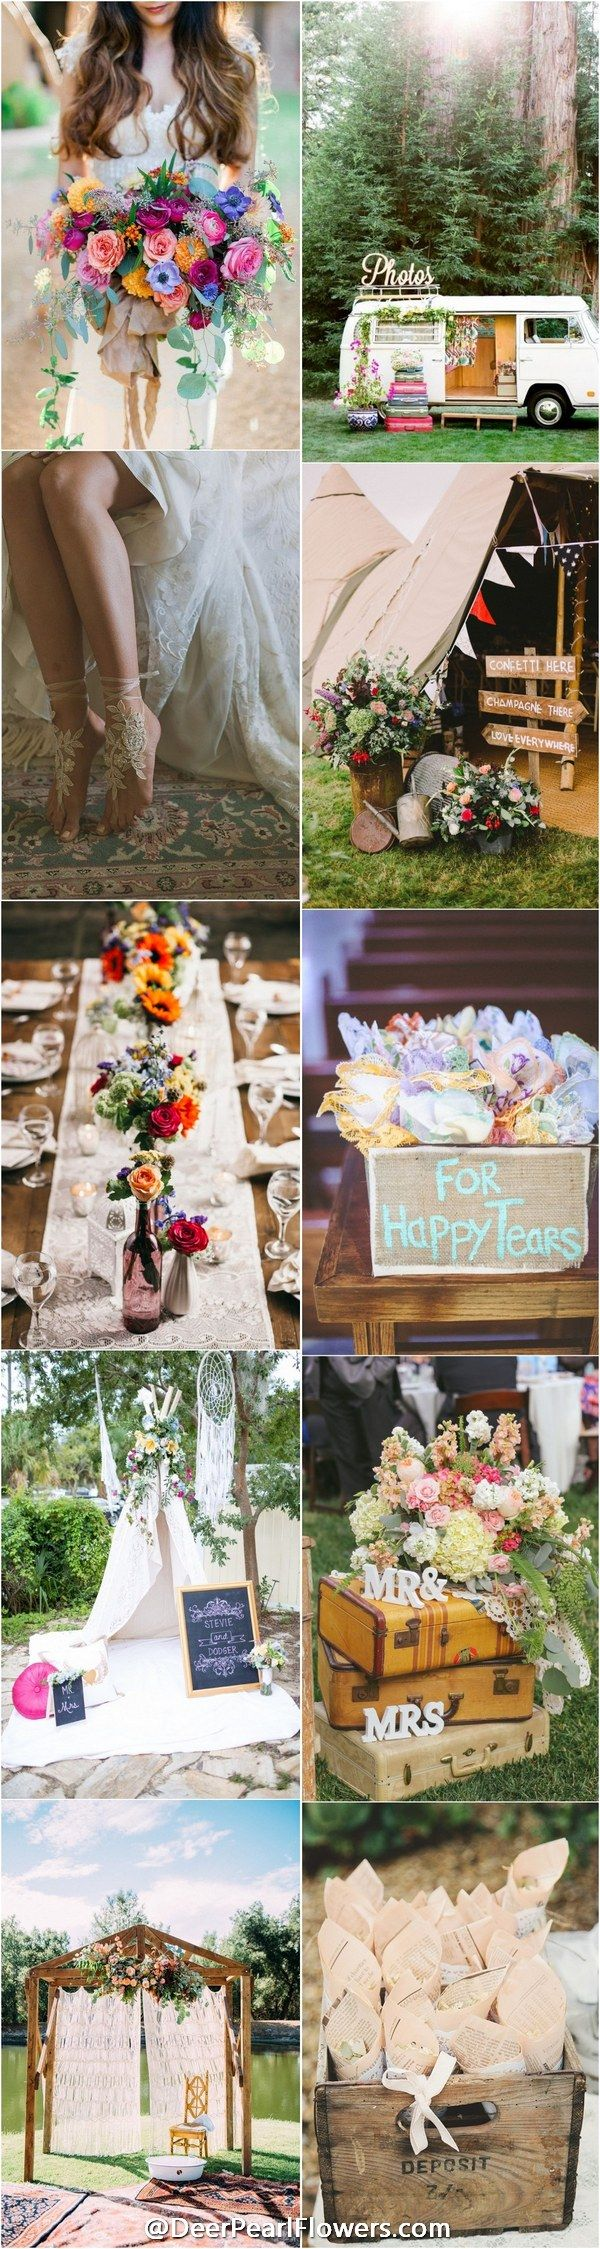 Best 25+ Bohemian Wedding Theme Ideas On Pinterest | 2017 Events, Whimsical  Wedding And Wedding Forrest